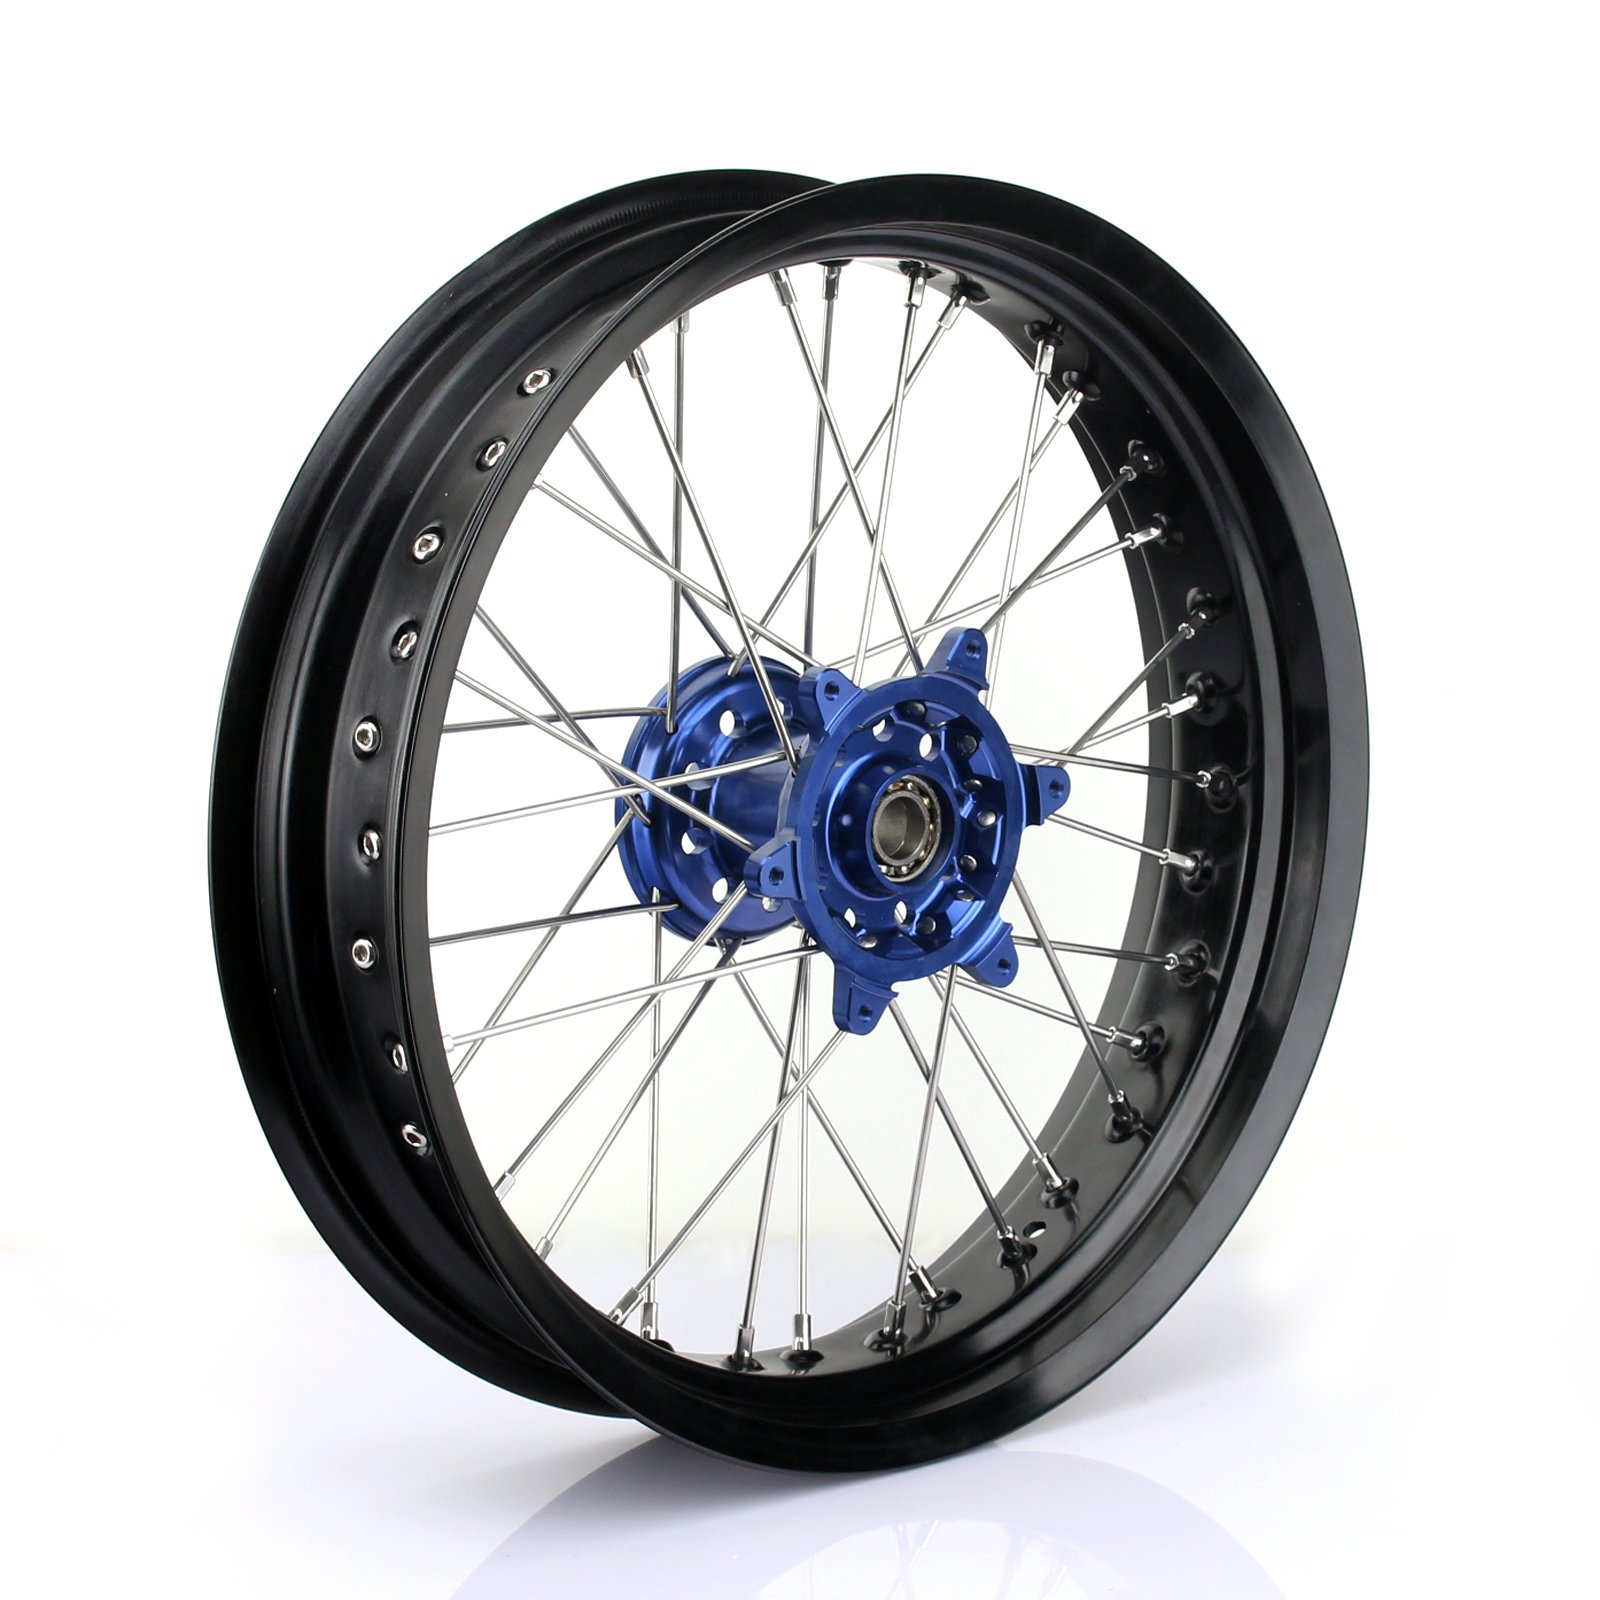 TARAZON 17x3.5 Front Supermoto Complete Wheel Set Rim Spokes Blue Hub for Yamaha YZ250F YZF250 2007-2013 YZ450F YZF450 2008-2013 YZ125 YZ250 2008-2015